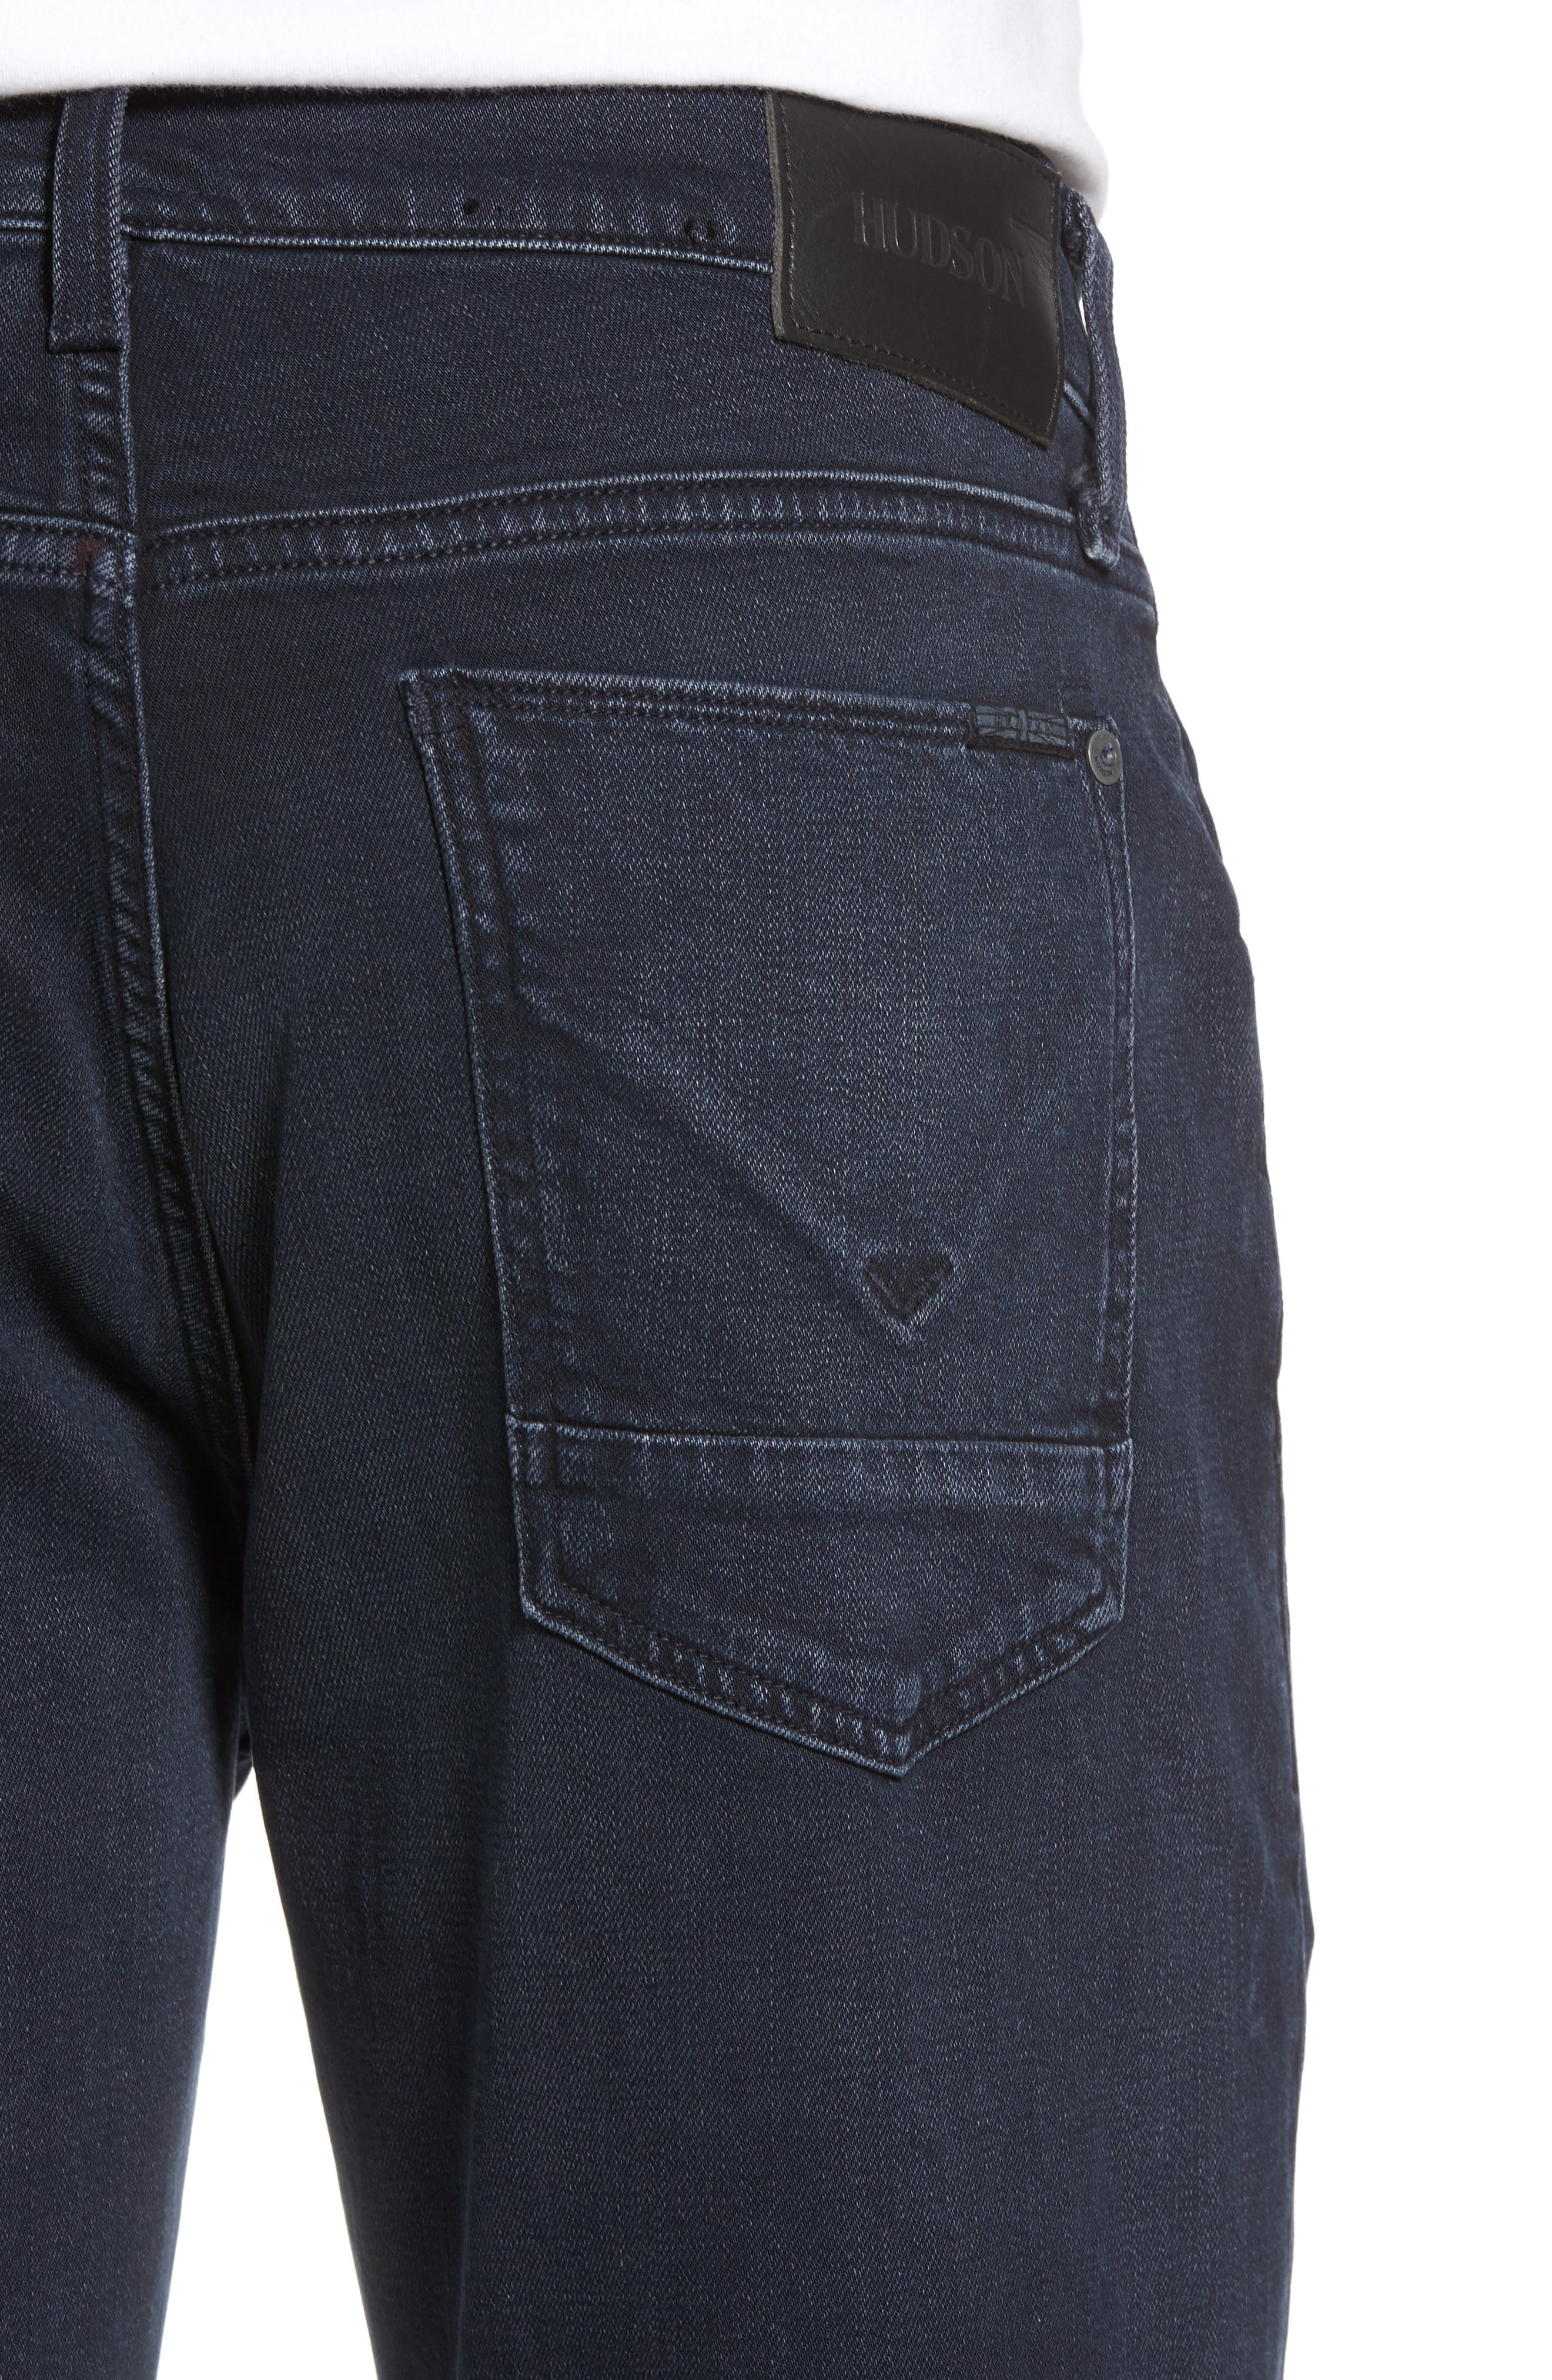 Byron Slim Straight Leg Jeans,                             Alternate thumbnail 4, color,                             404